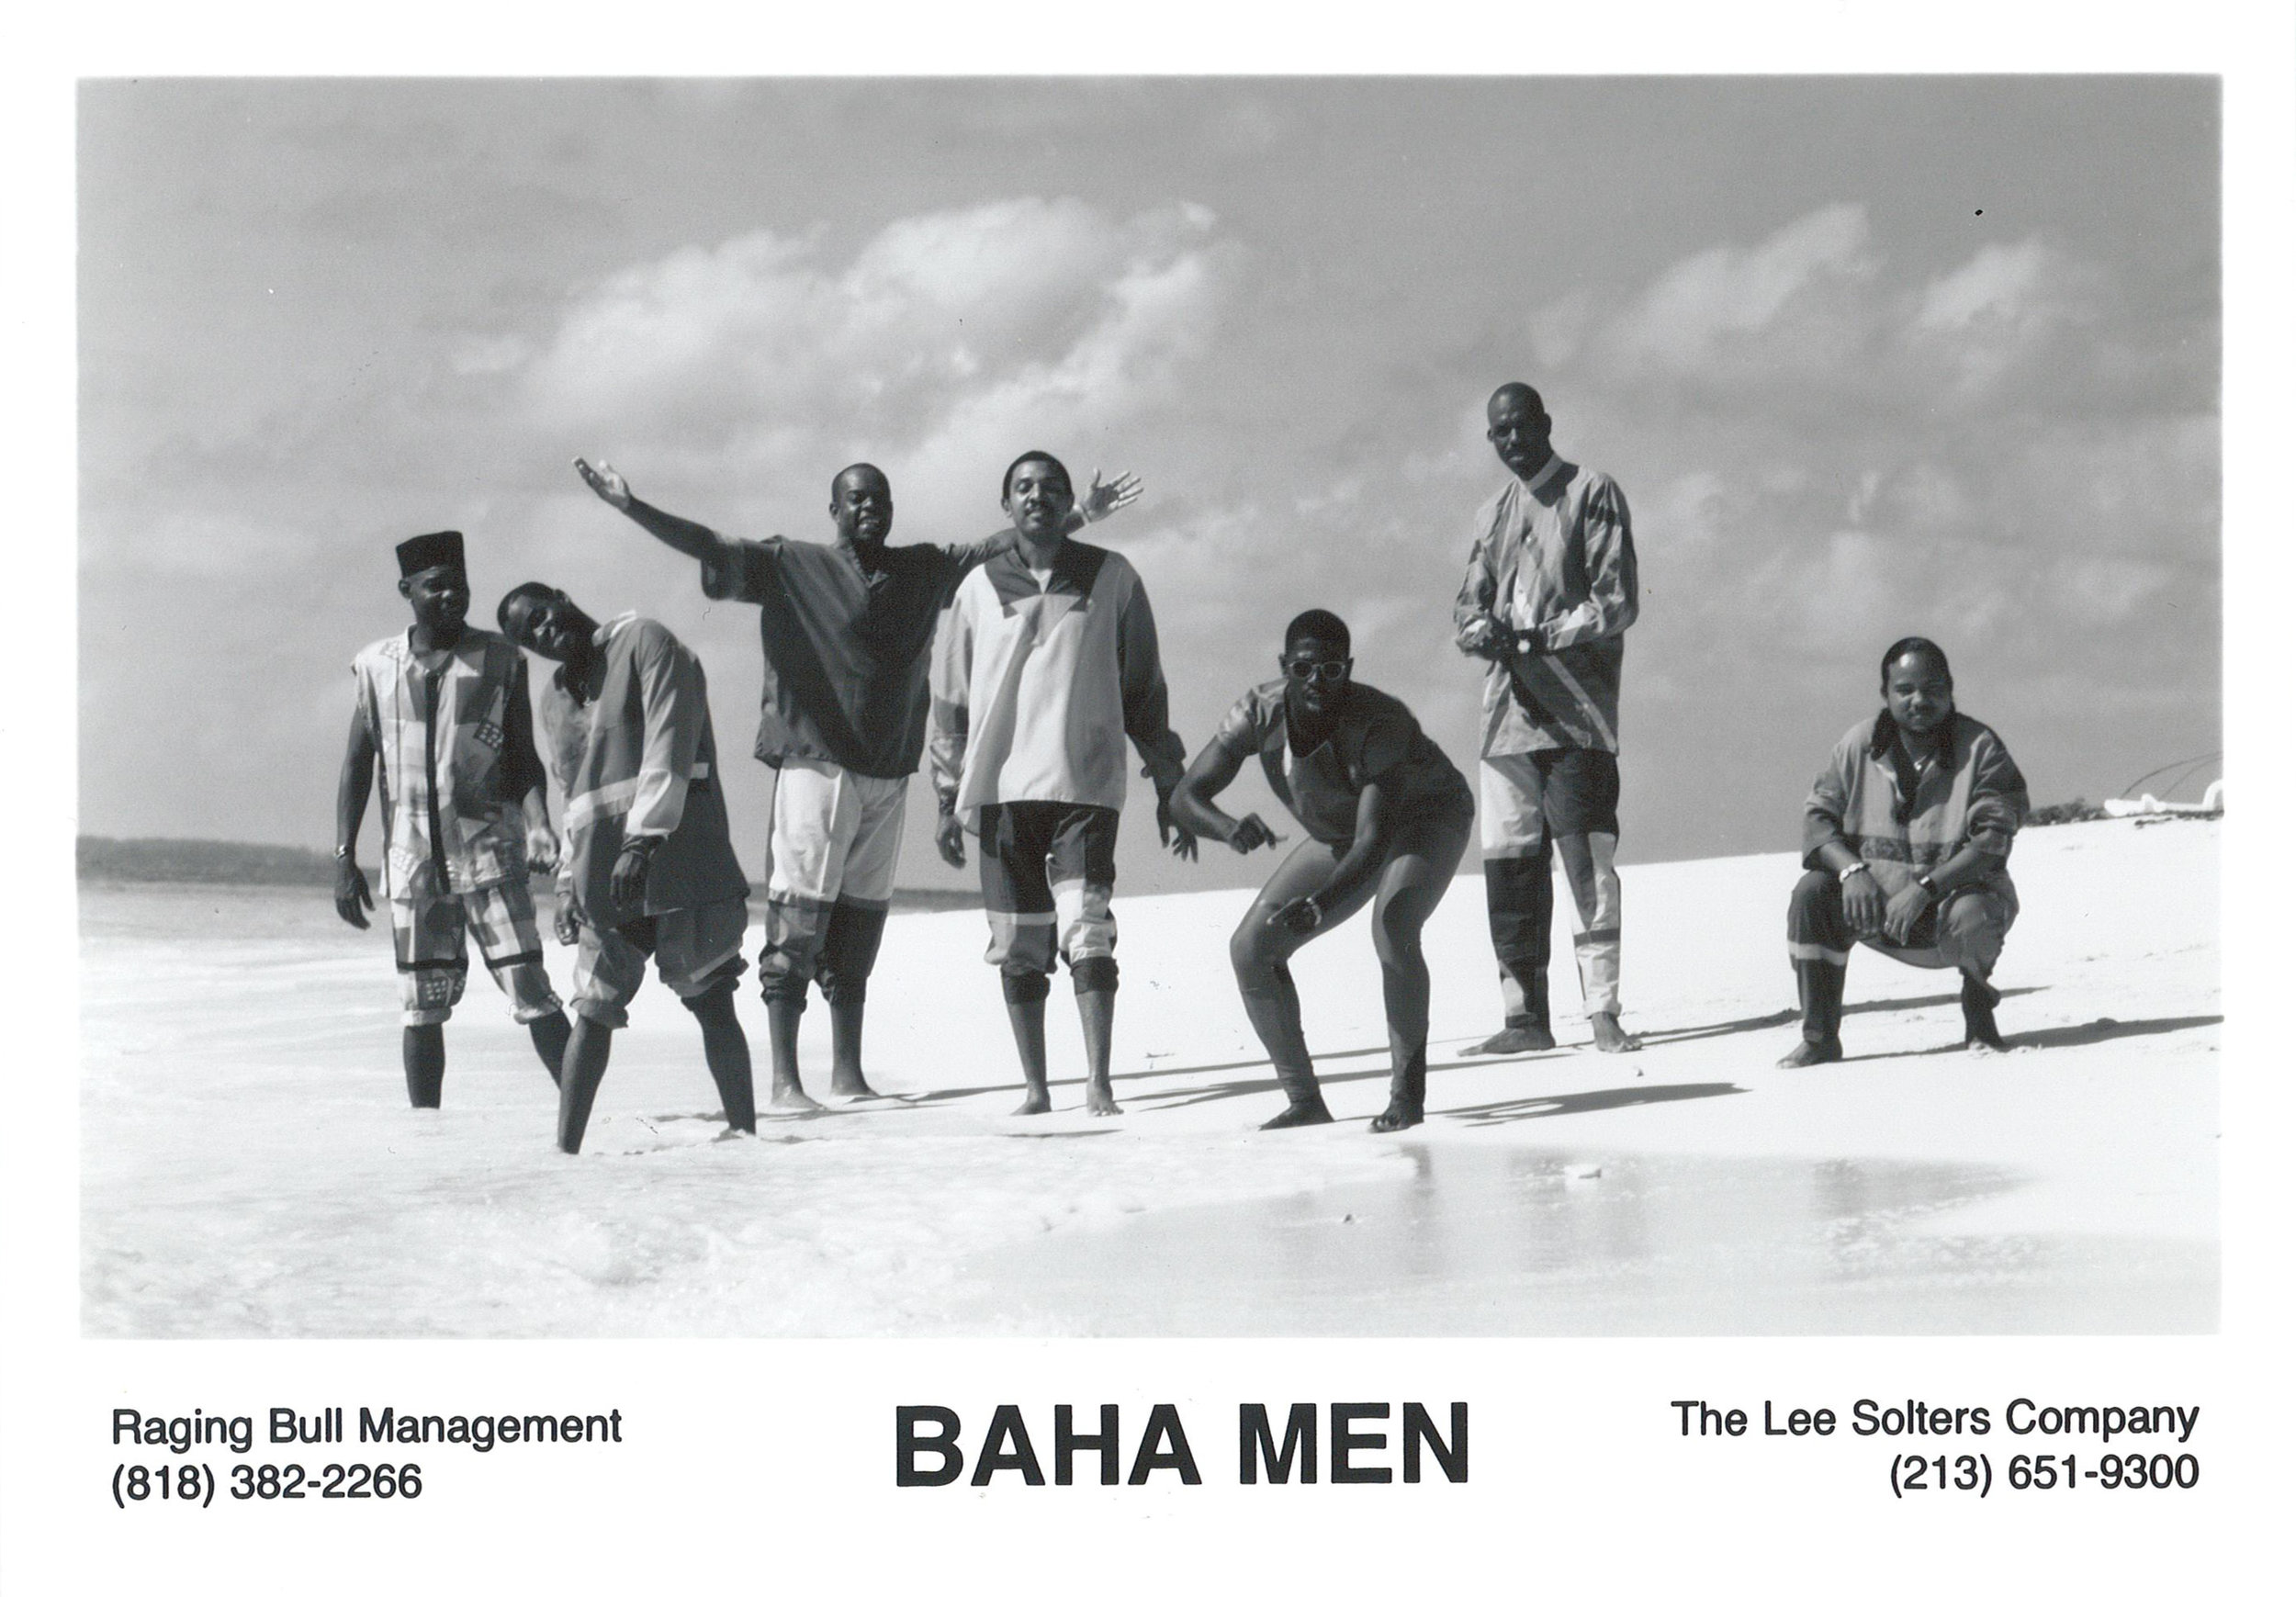 WLWLTDOO-XXXX-PRINT-BAHA_MEN-PROMO_PHOTO-RAGING_BULL_MGMT.jpg